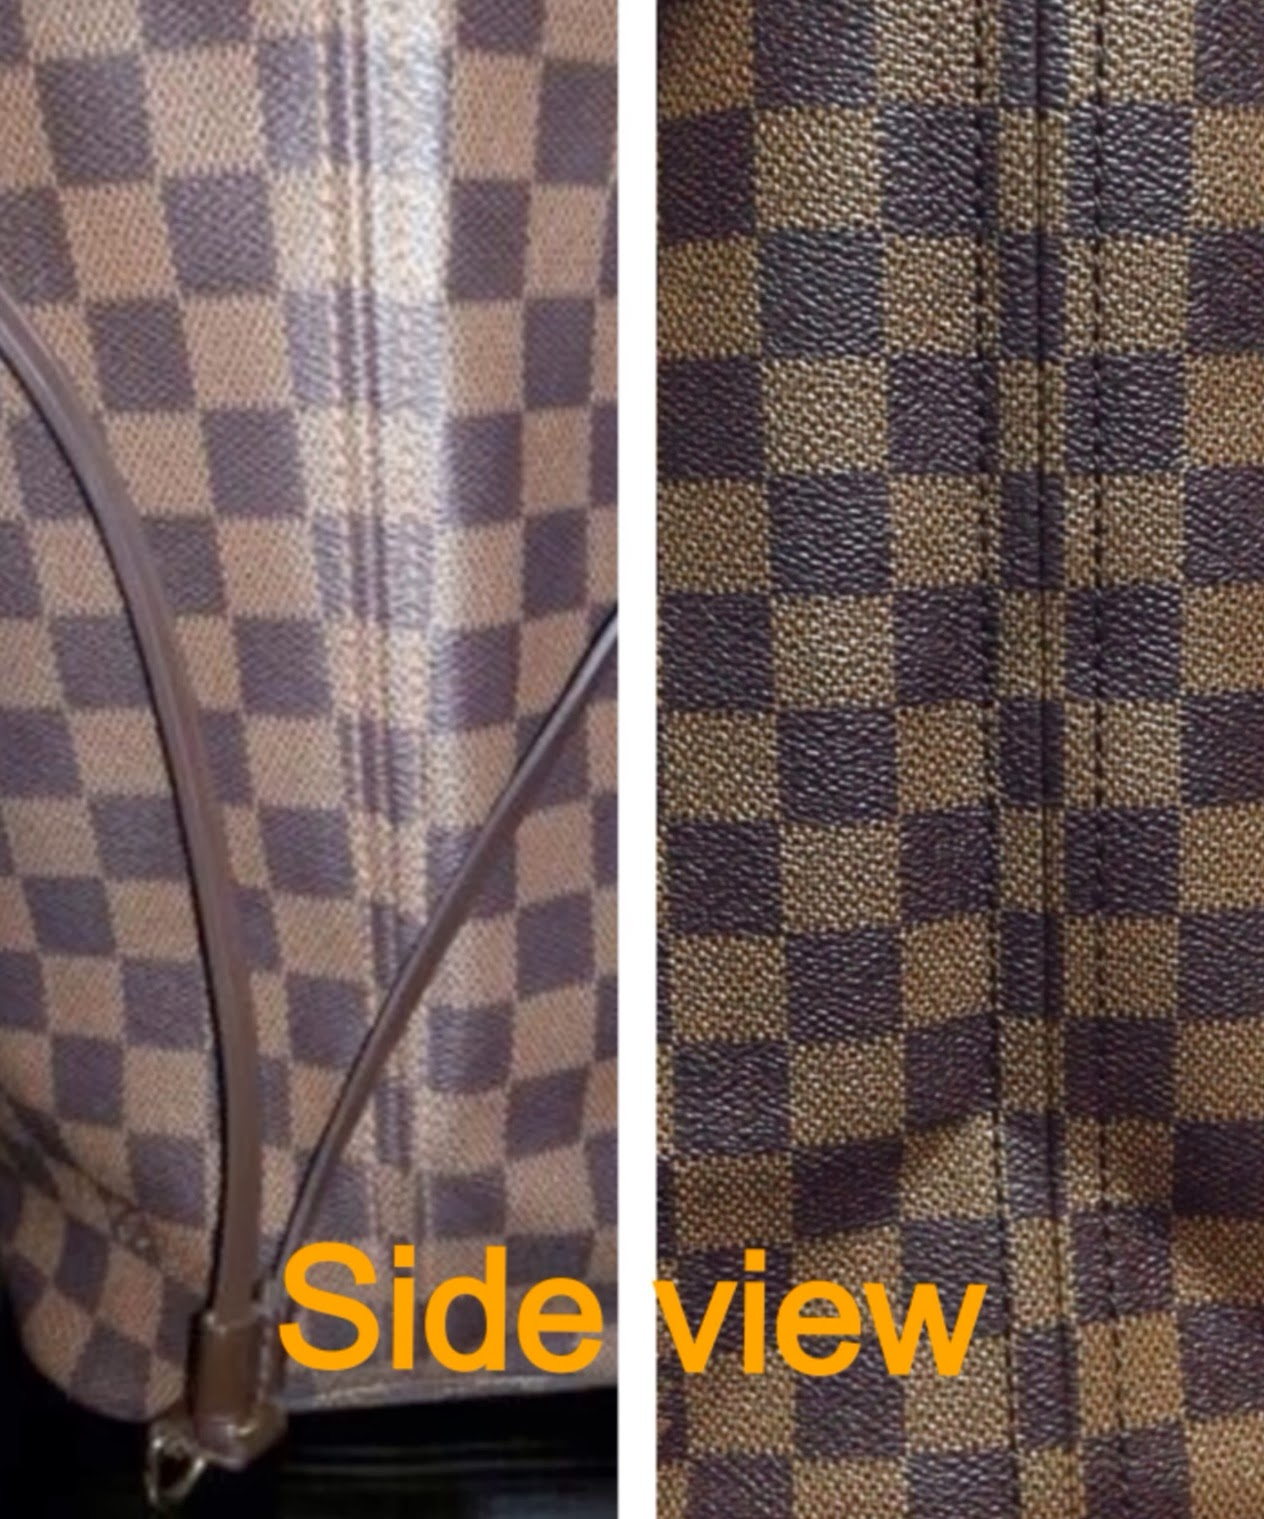 df17d13fc36e The authentic is on the left side. The authentic LV always pays close  attention to patter details. They avoid cutting and or ruining the pattern  hence the ...